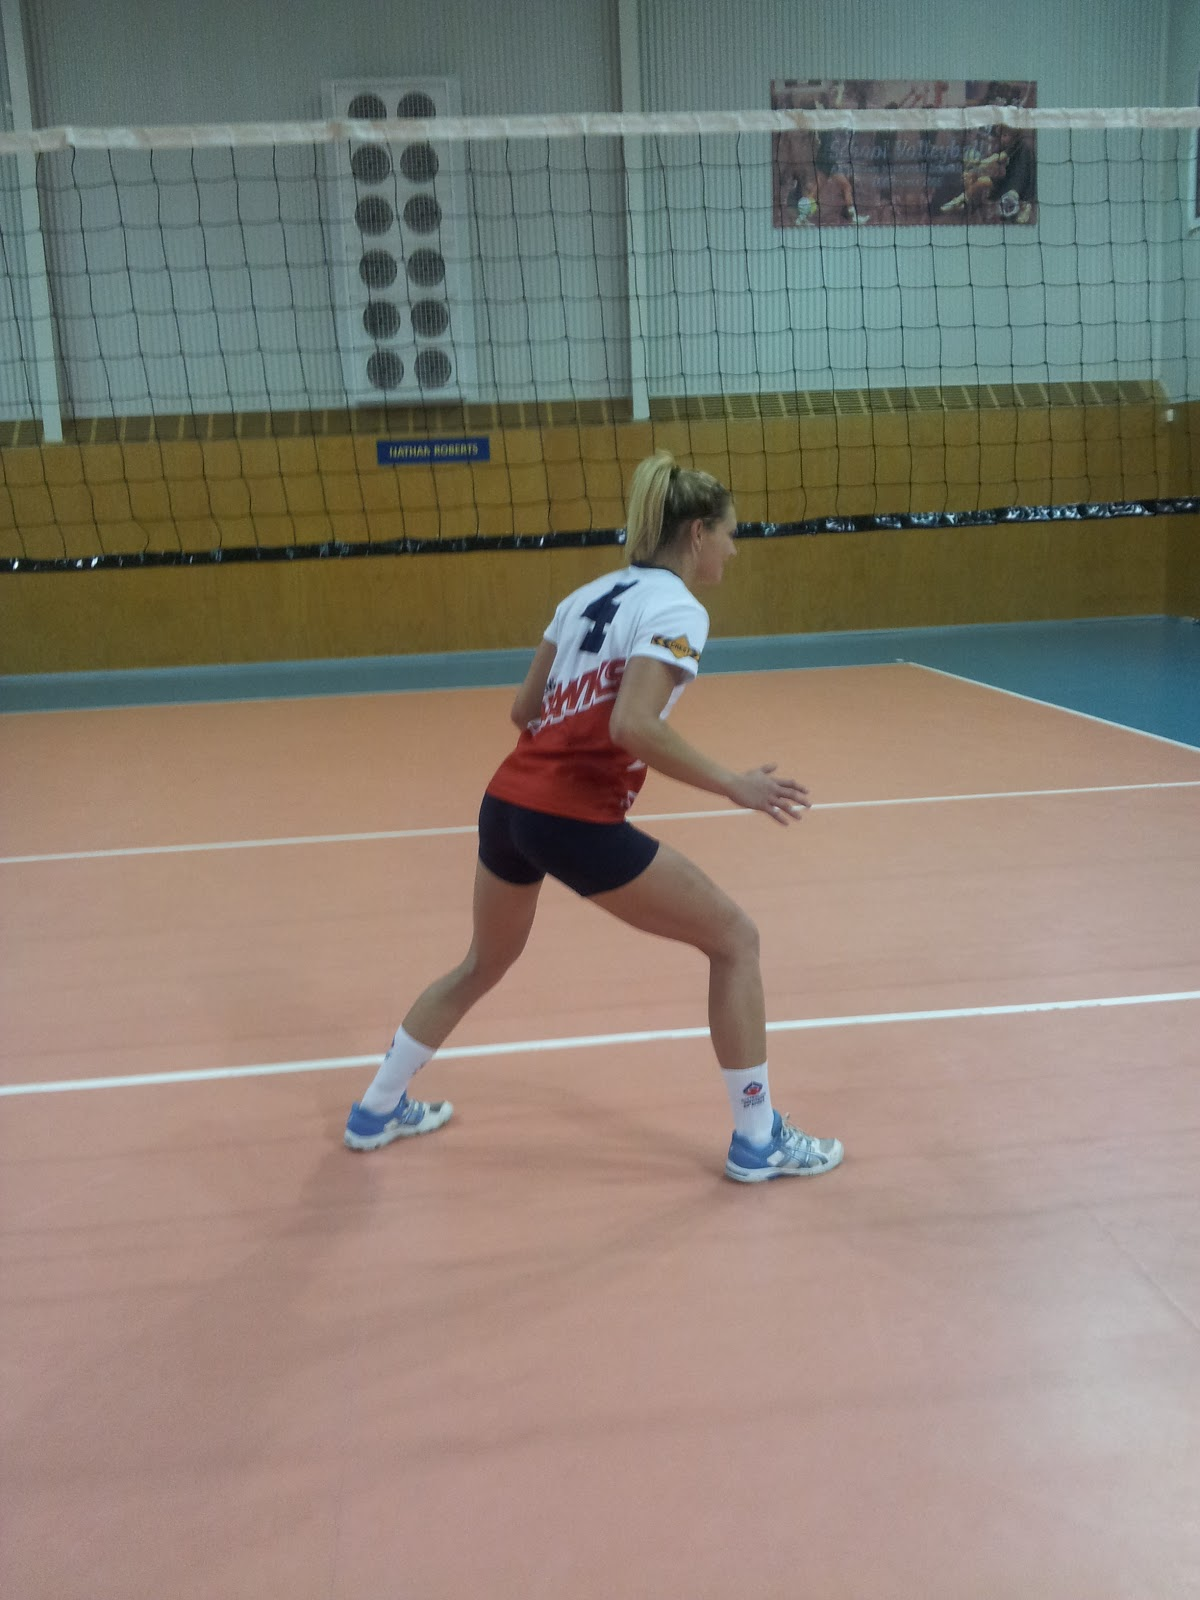 biomechanics in volleyball To biomechanics and kinetic analysis on volleyball spiking techniques using  biomechanical principles to analyze the varying pattern in each joint angle of  lower.